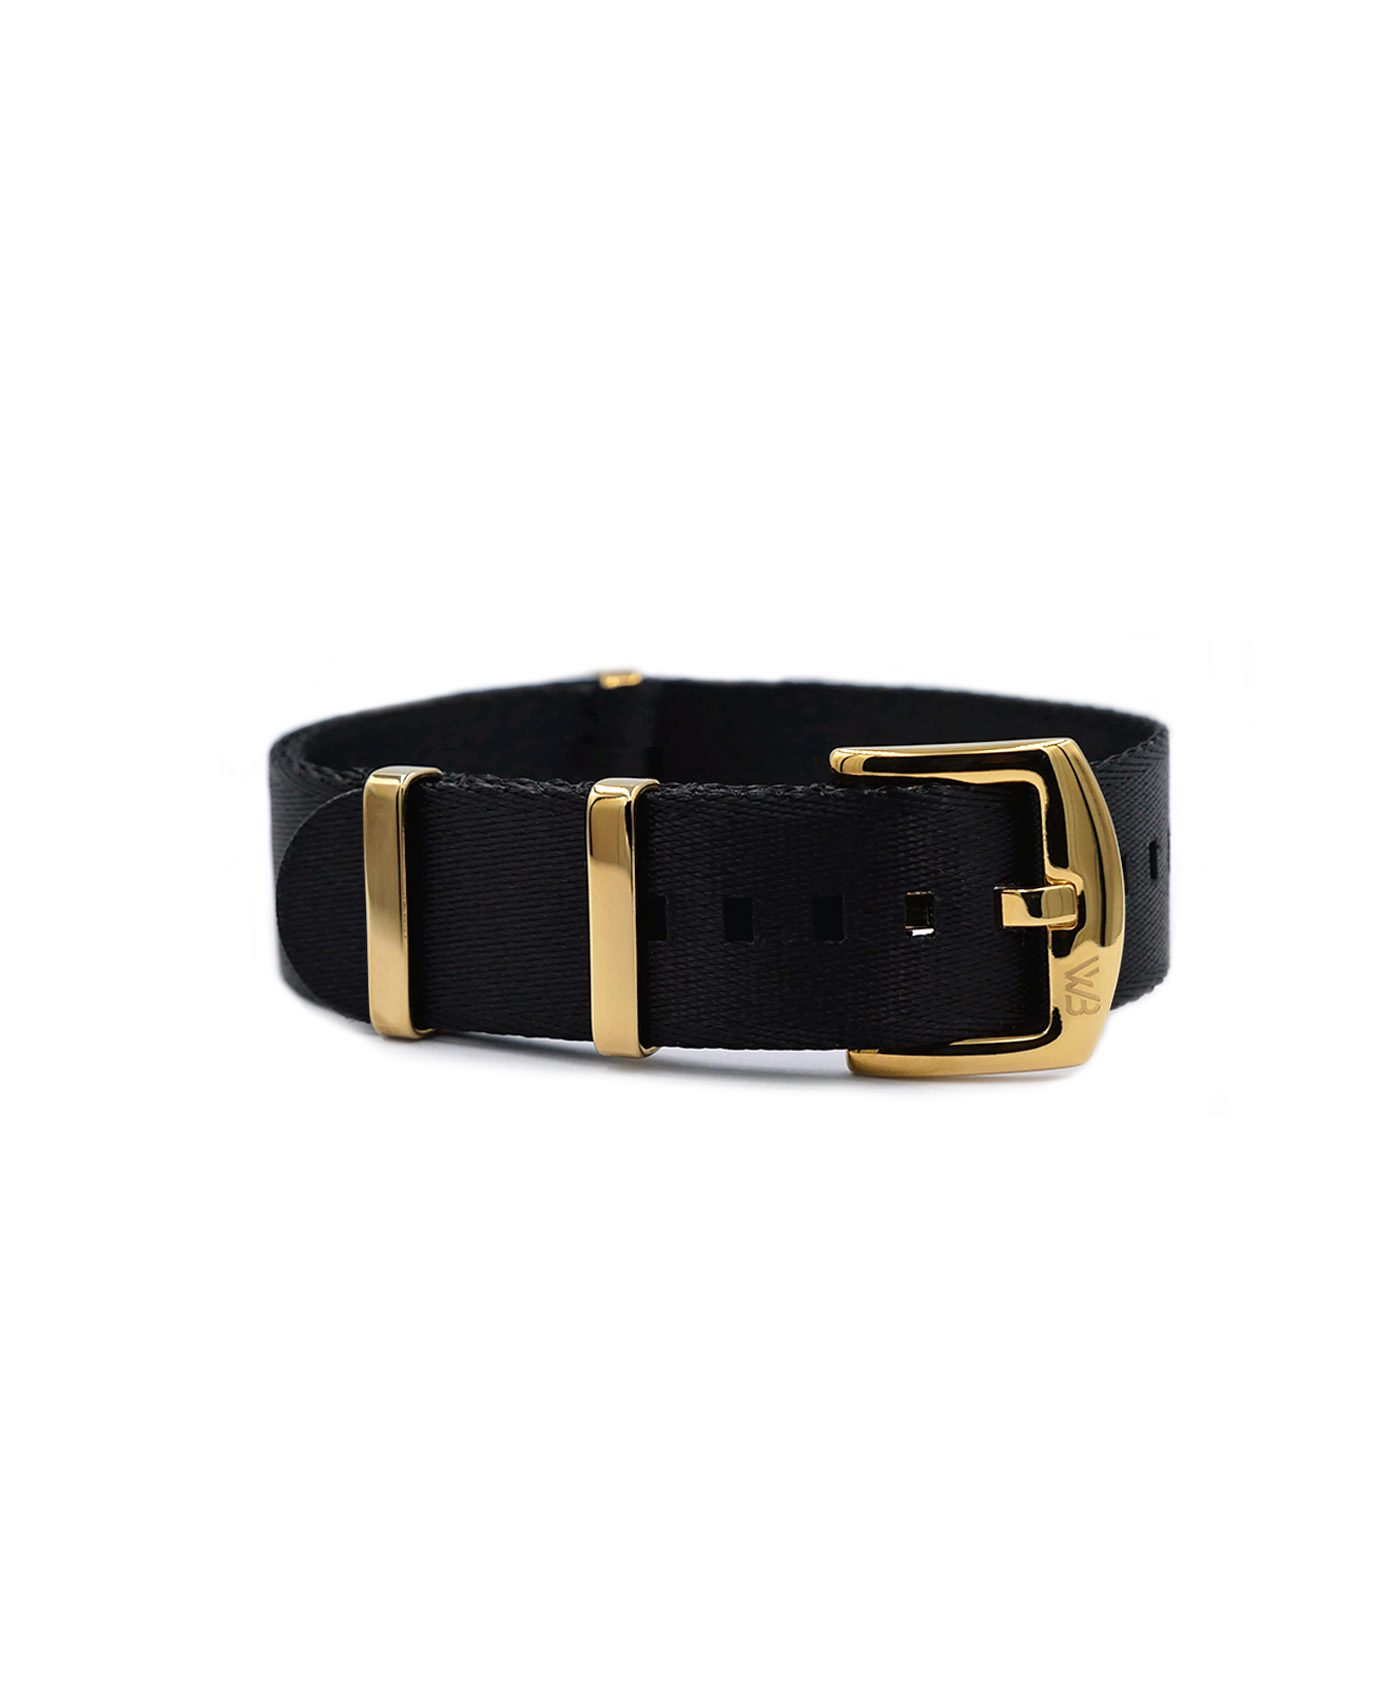 Watchbandit Premium yellow gold NATO strap front